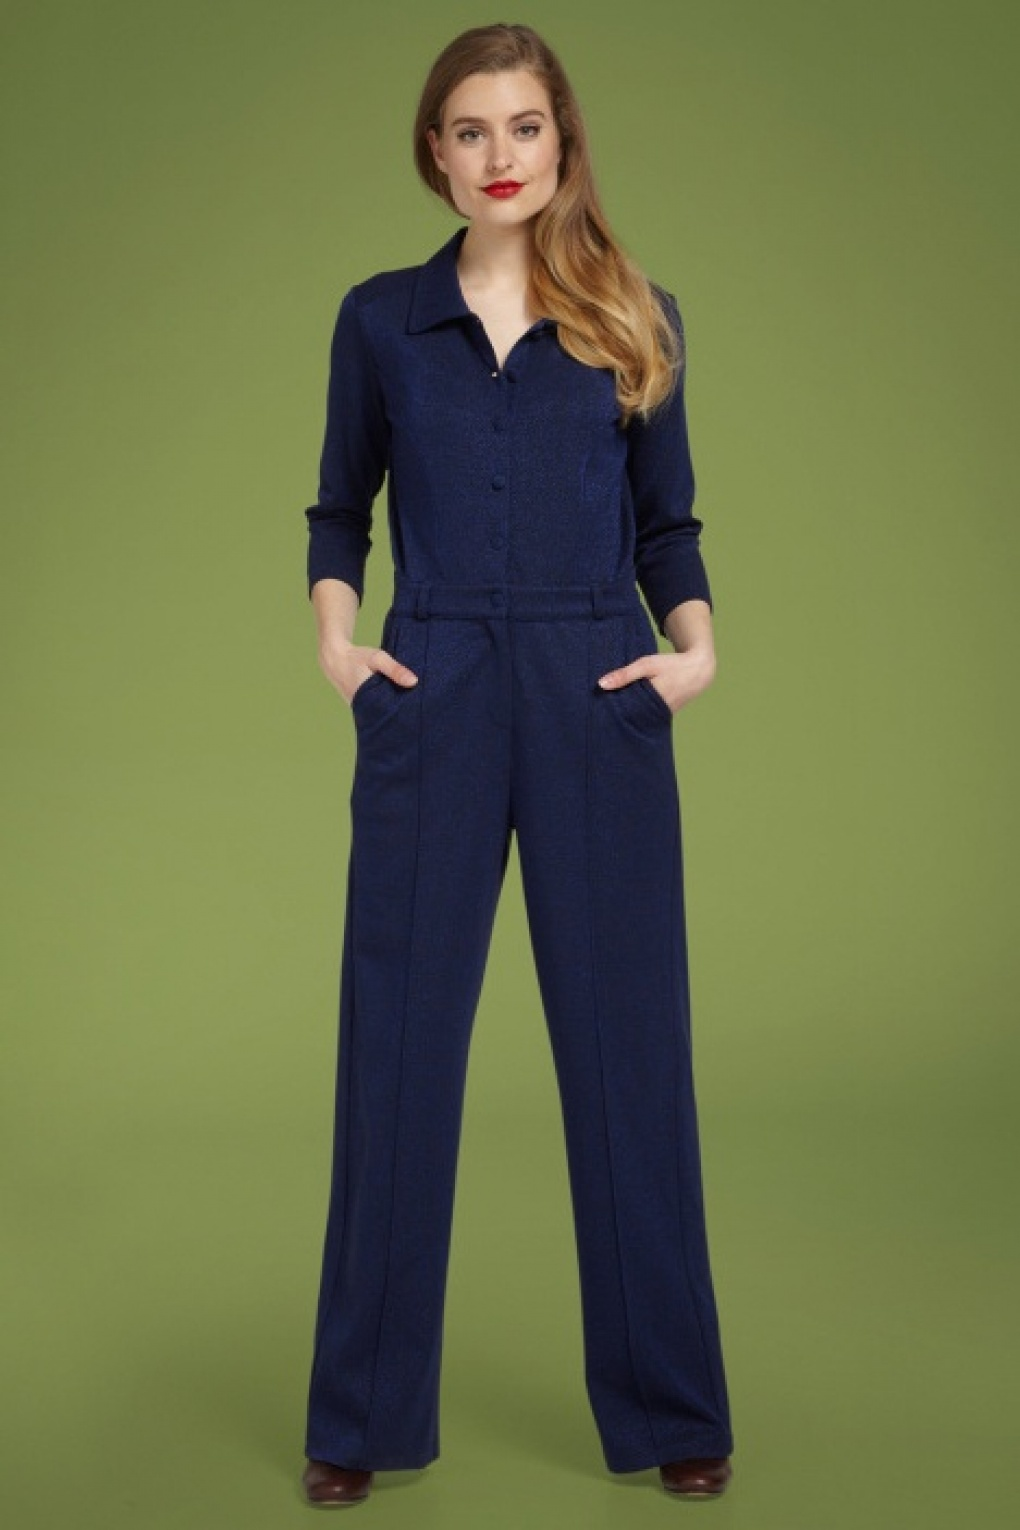 Vintage High Waisted Trousers, Sailor Pants, Jeans 70s Macy Milano Lurex Jumpsuit in Blue £131.76 AT vintagedancer.com